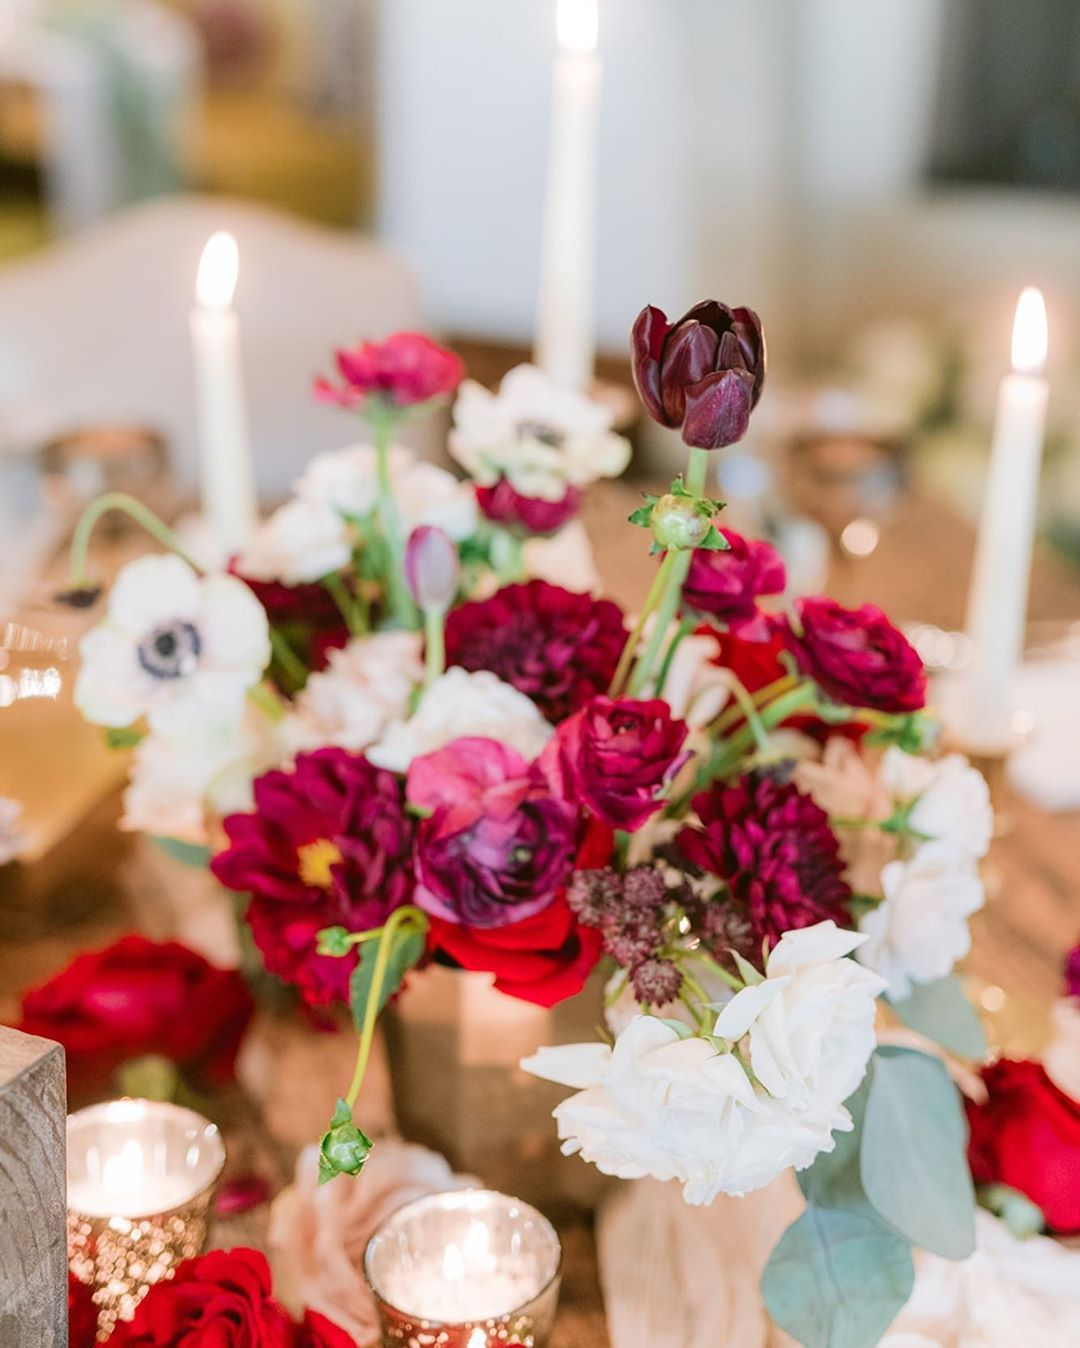 Atlanta Wedding Florist On Instagram I Felt The Cold Air Come In Today So Warm Tones In Flowers It Is Laur Wedding Florist Atlanta Wedding Florist